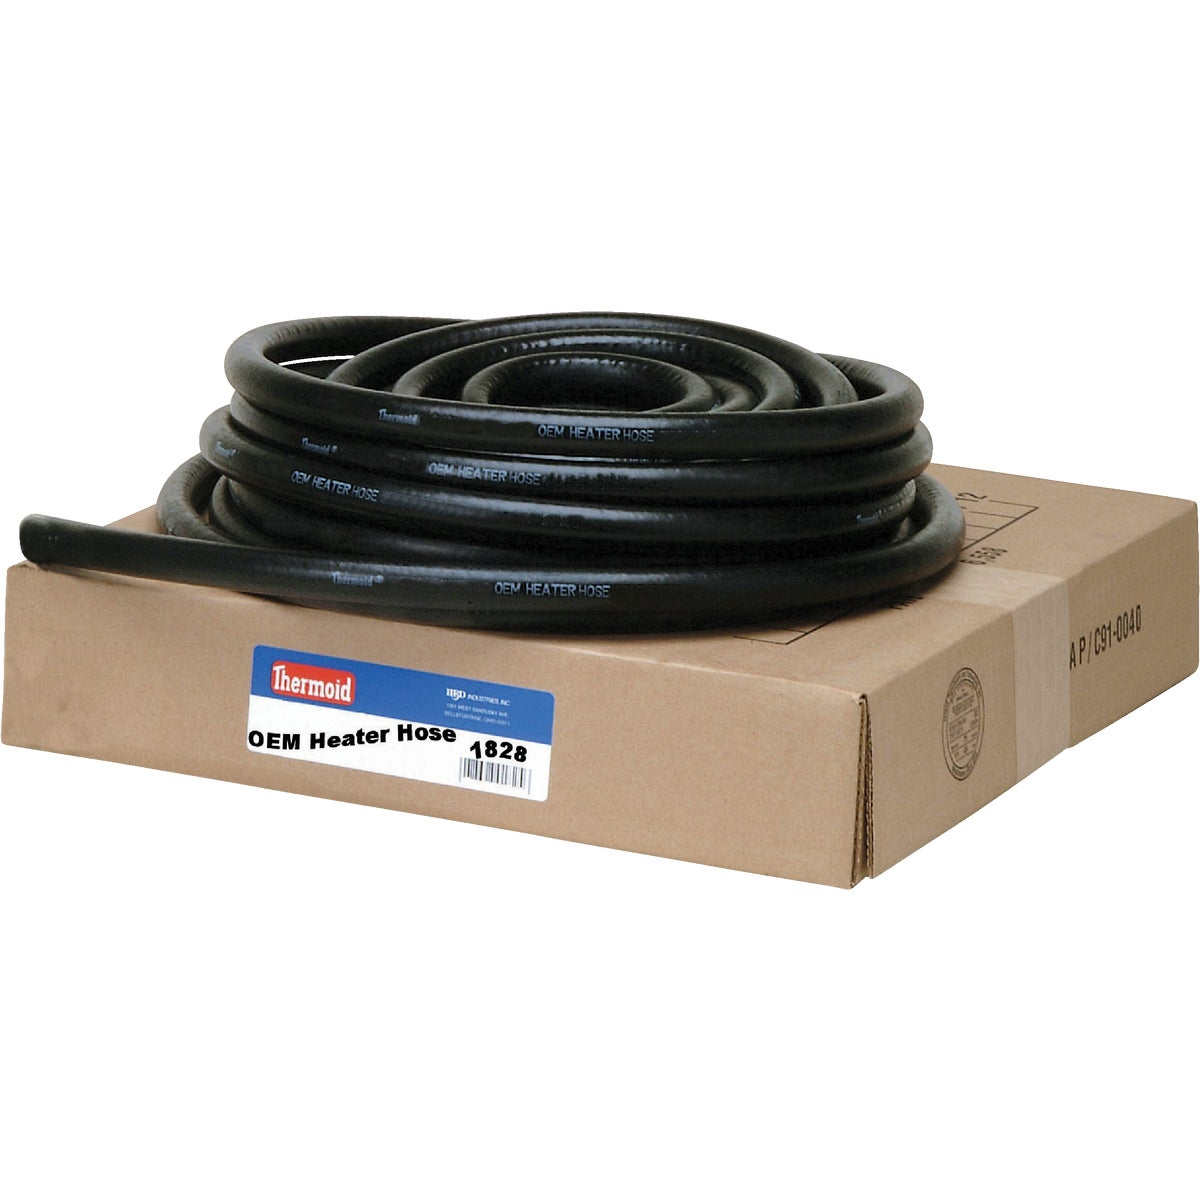 "1"" BLACK HEATER HOSE - 1828 by H B D Industries Inc"